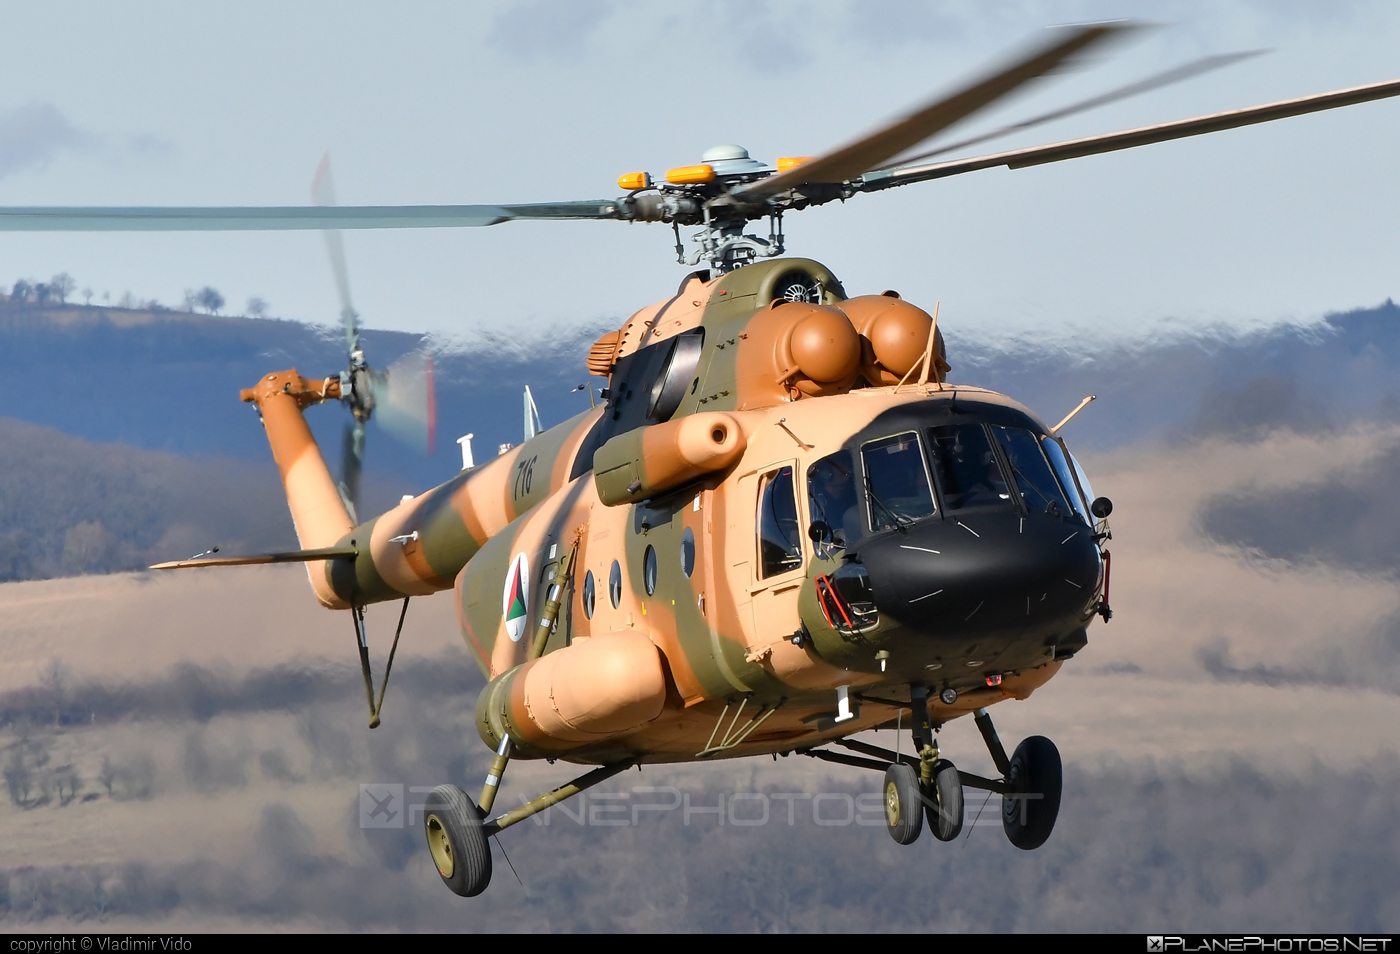 Mil Mi-17V-5 - 716 operated by Afghan Air Force #afghanairforce #mi17 #mi17v5 #mil #mil17 #milhelicopters